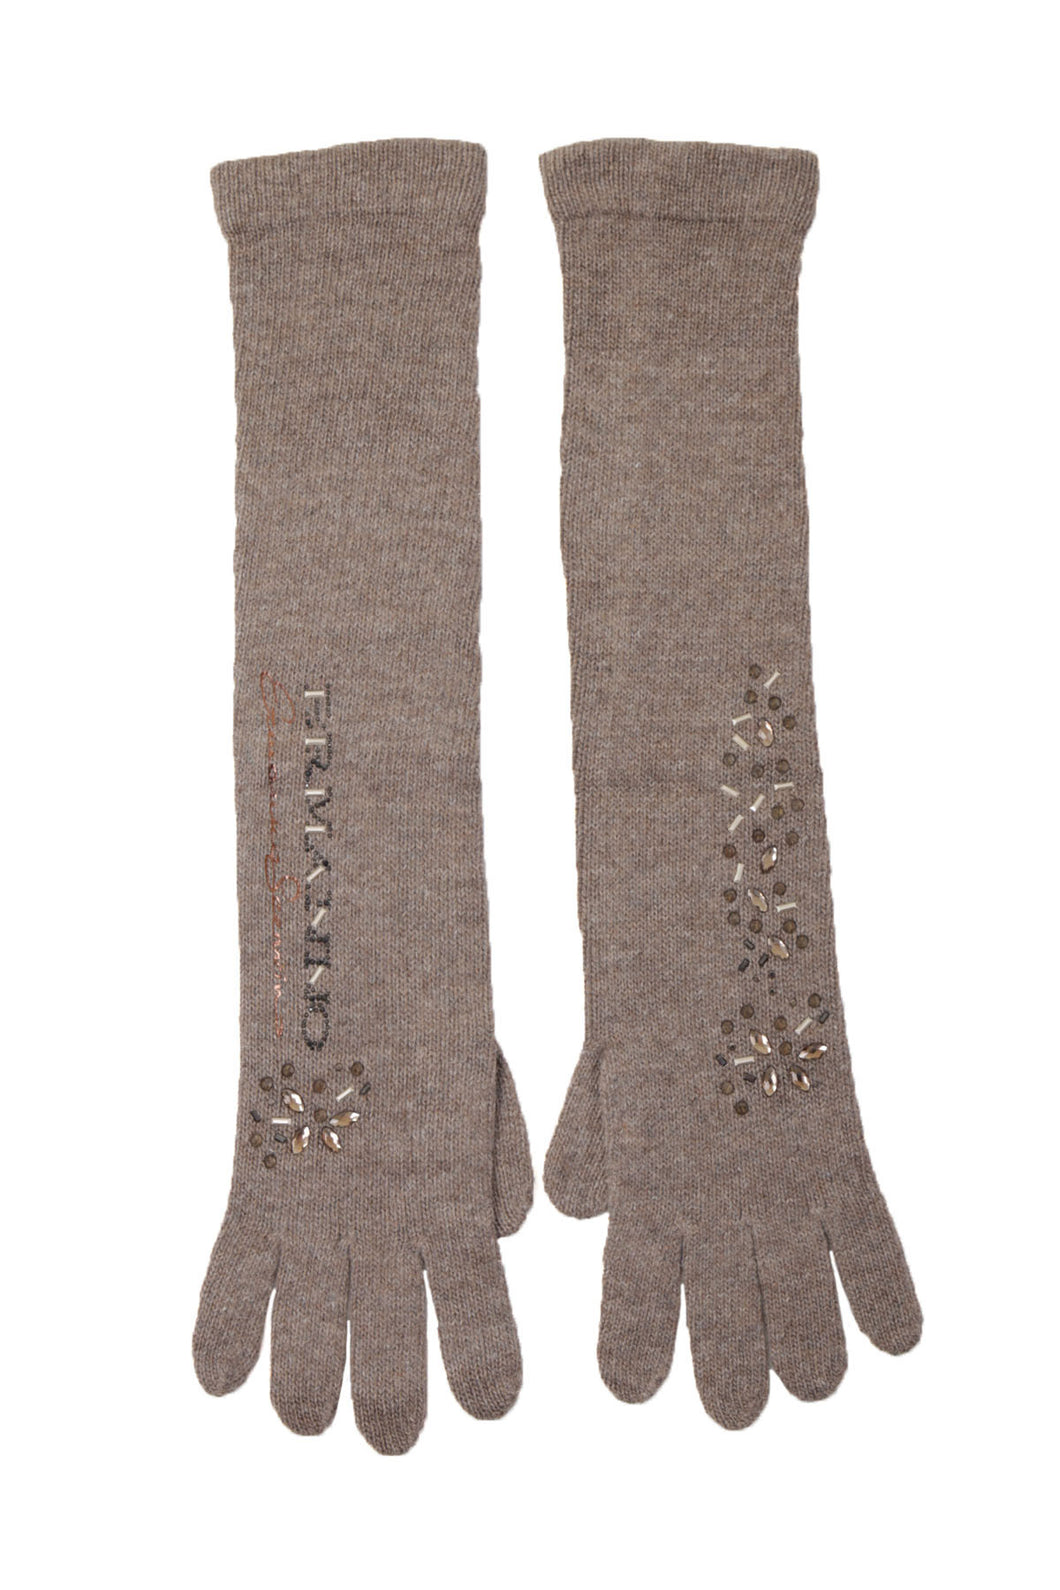 Ermanno Scervino  Women Gloves - SisBrothers